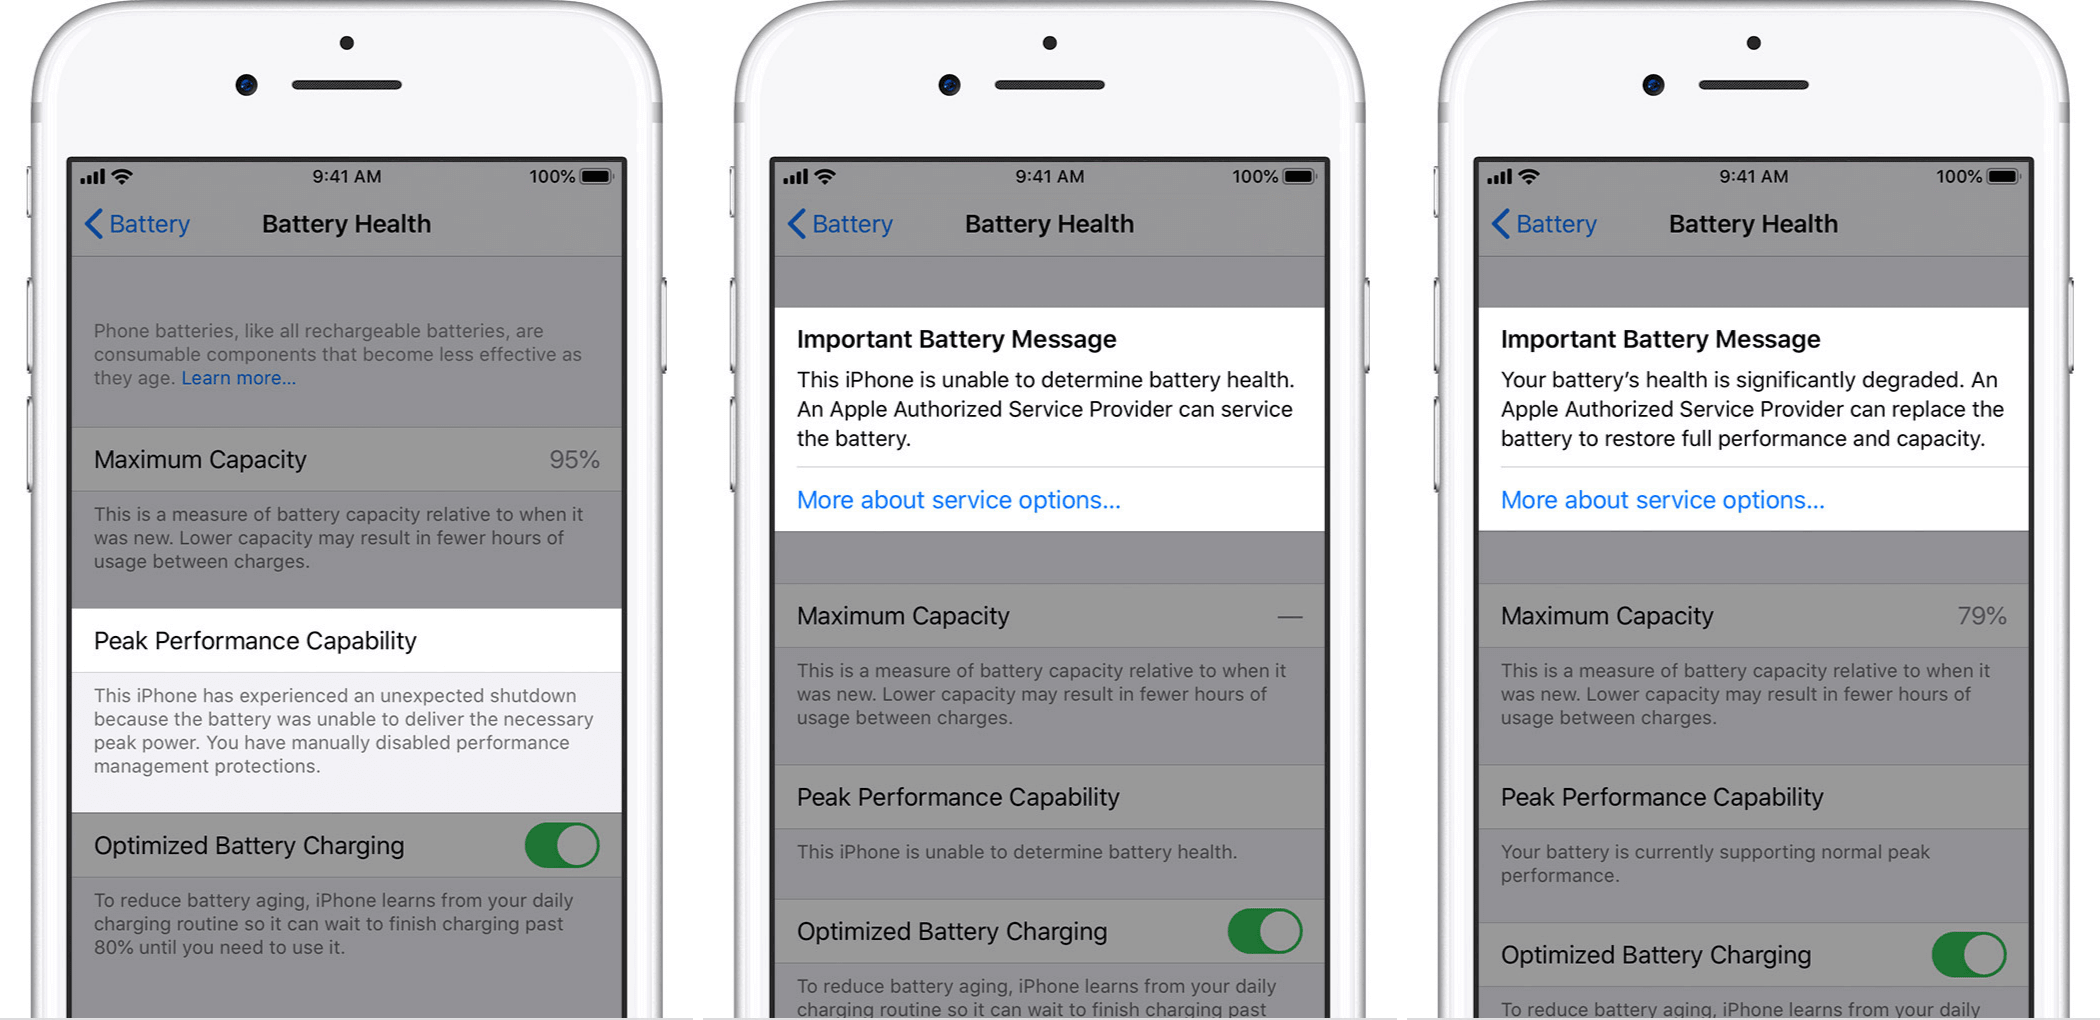 How to check iPhone battery health? Is iPhone battery health 85 good or bad?